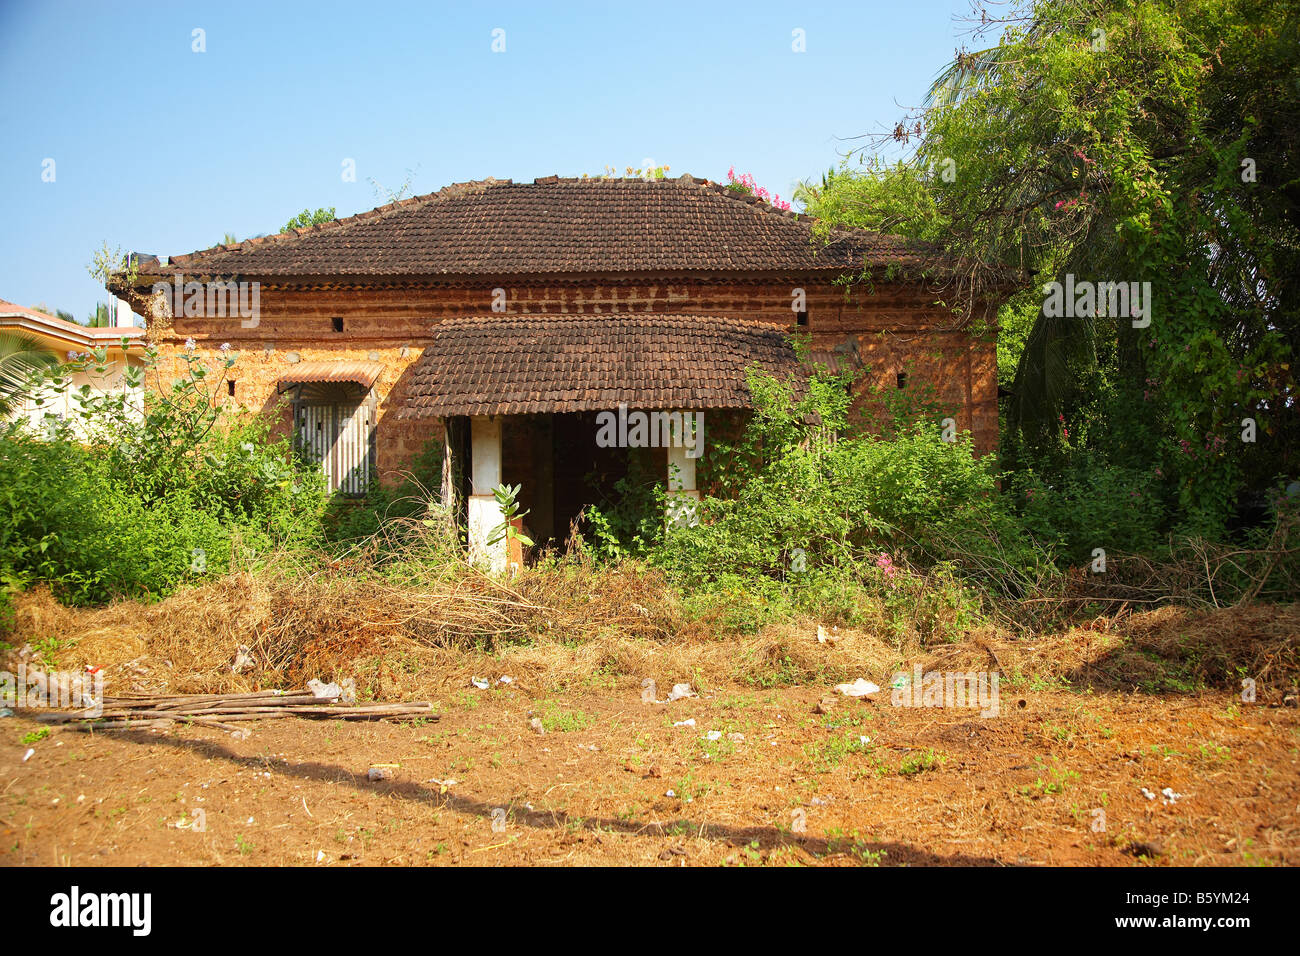 Neglected Portuguese style Colonial House in Goa, India - Stock Image